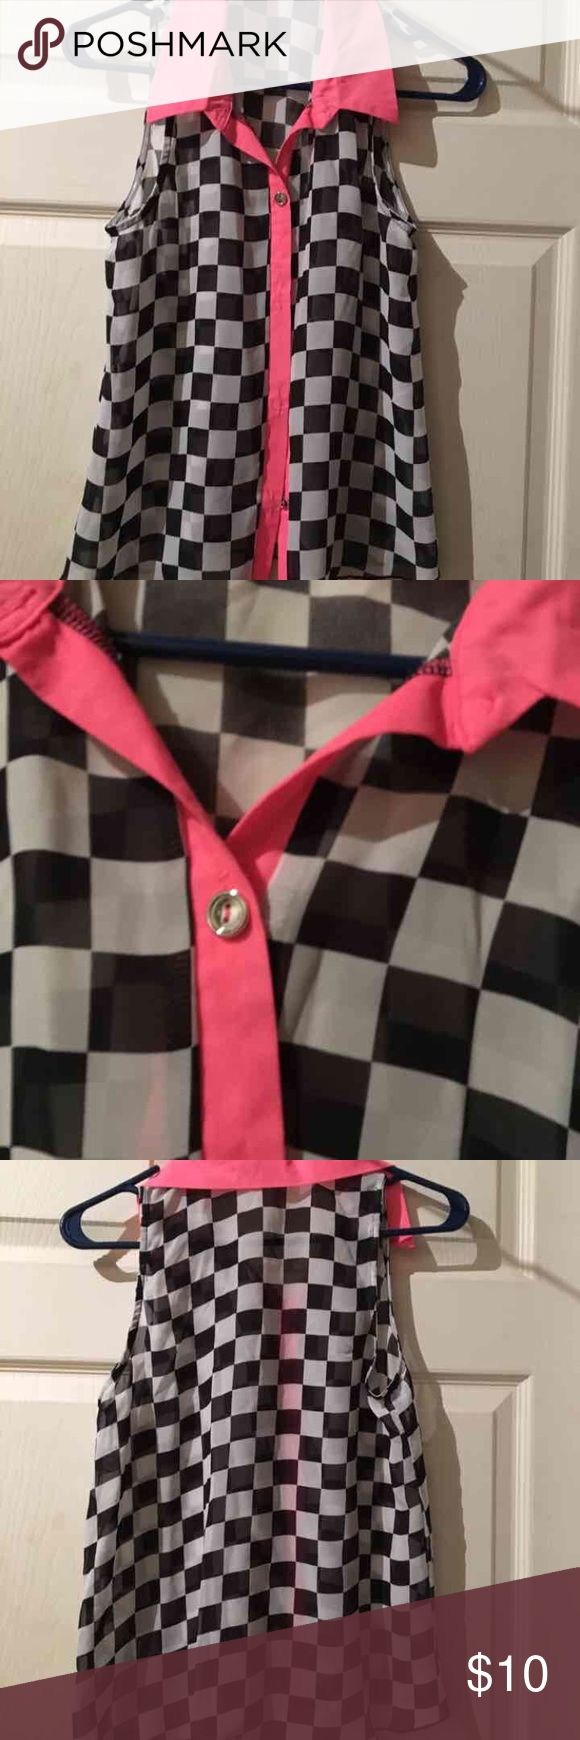 Black & White Sleeveless Shirt Black and white checkered Sleeveless Top Body Central Size S   Price dropped it is firm. Body Central Tops Button Down Shirts